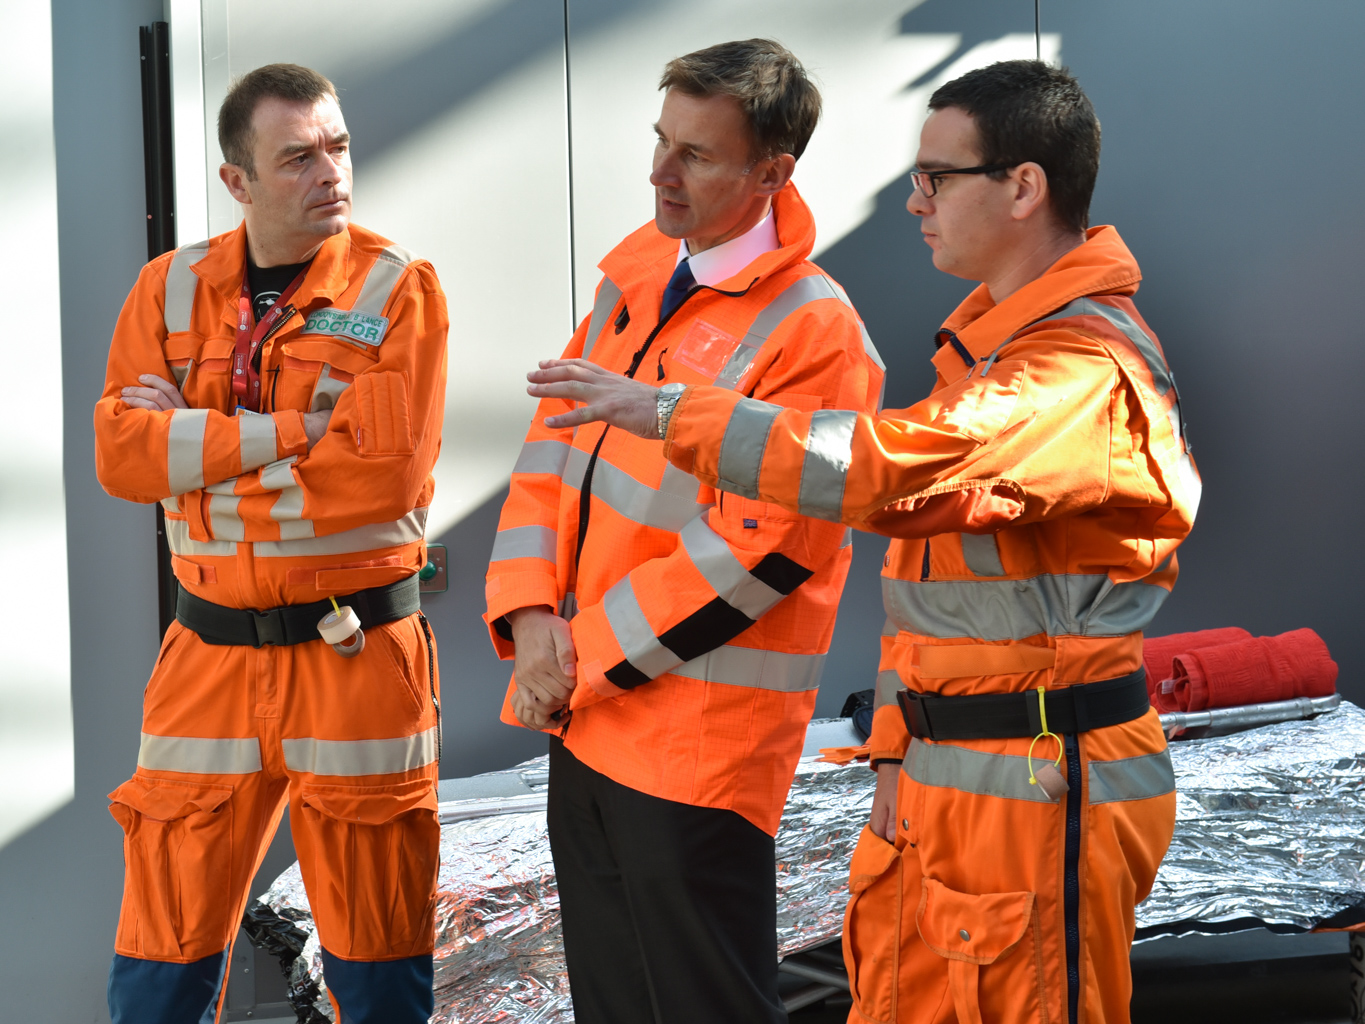 Secretary of State for Health Jeremy Hunt. London's Air Ambulance